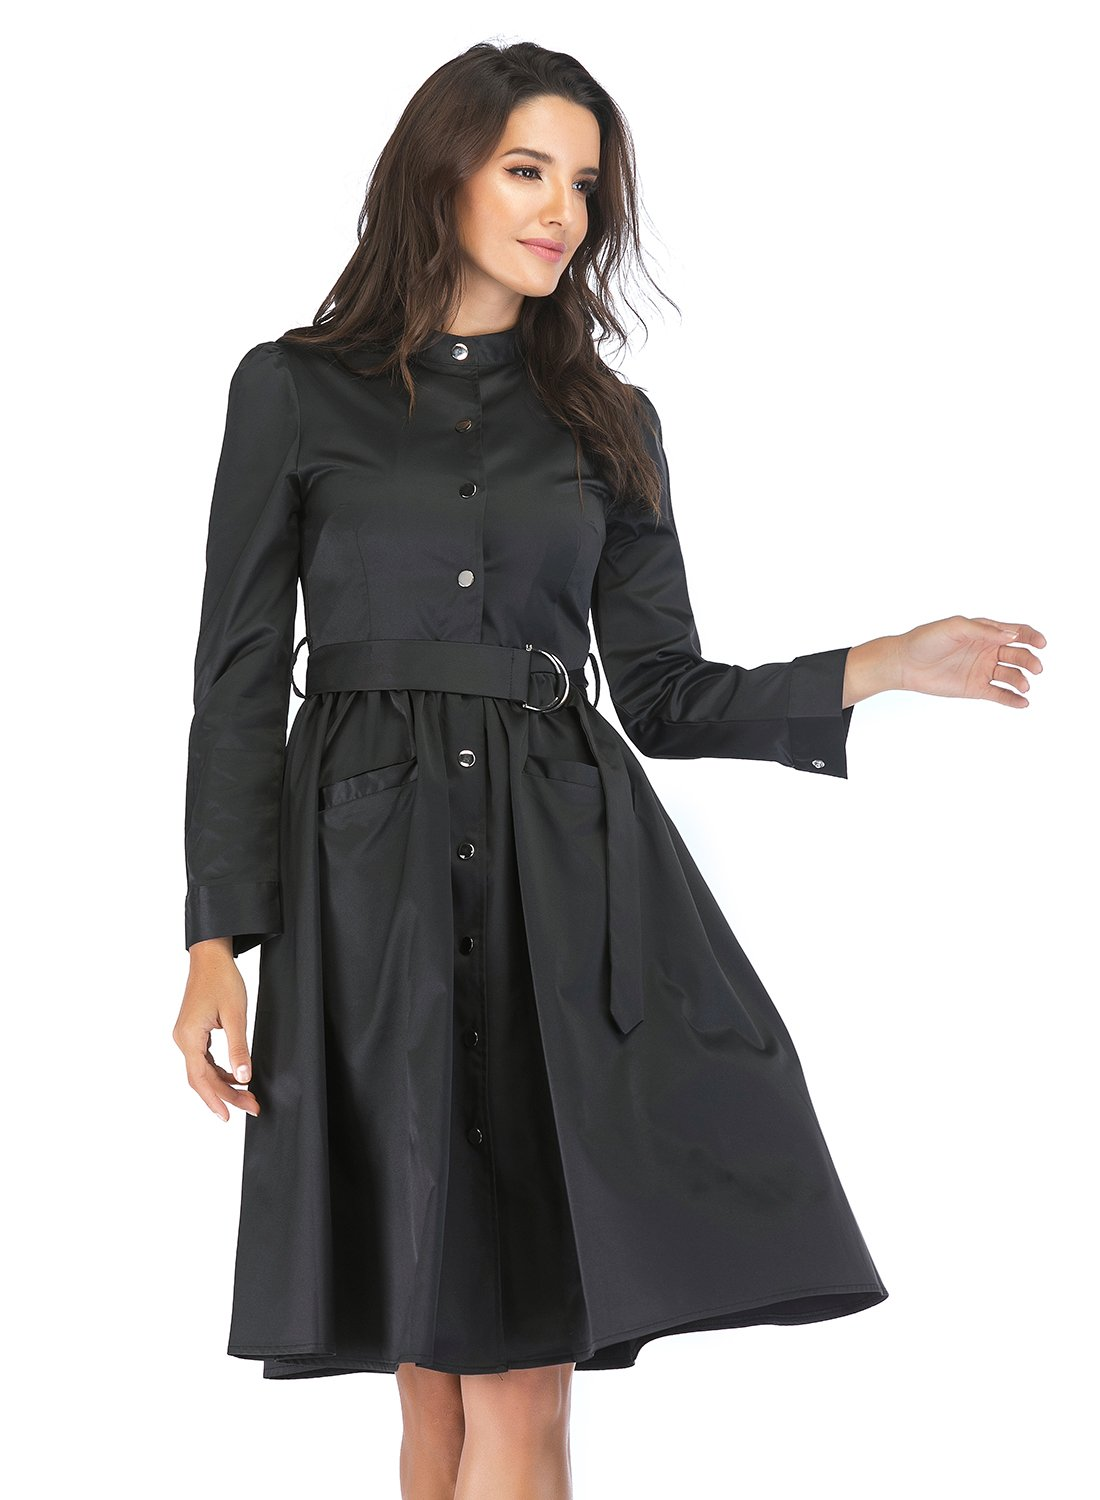 Lefancy Women's Mock Neck Long Sleeves Button Down Belted Mid Length Casual A-line Dress with Pockets (S, Black)